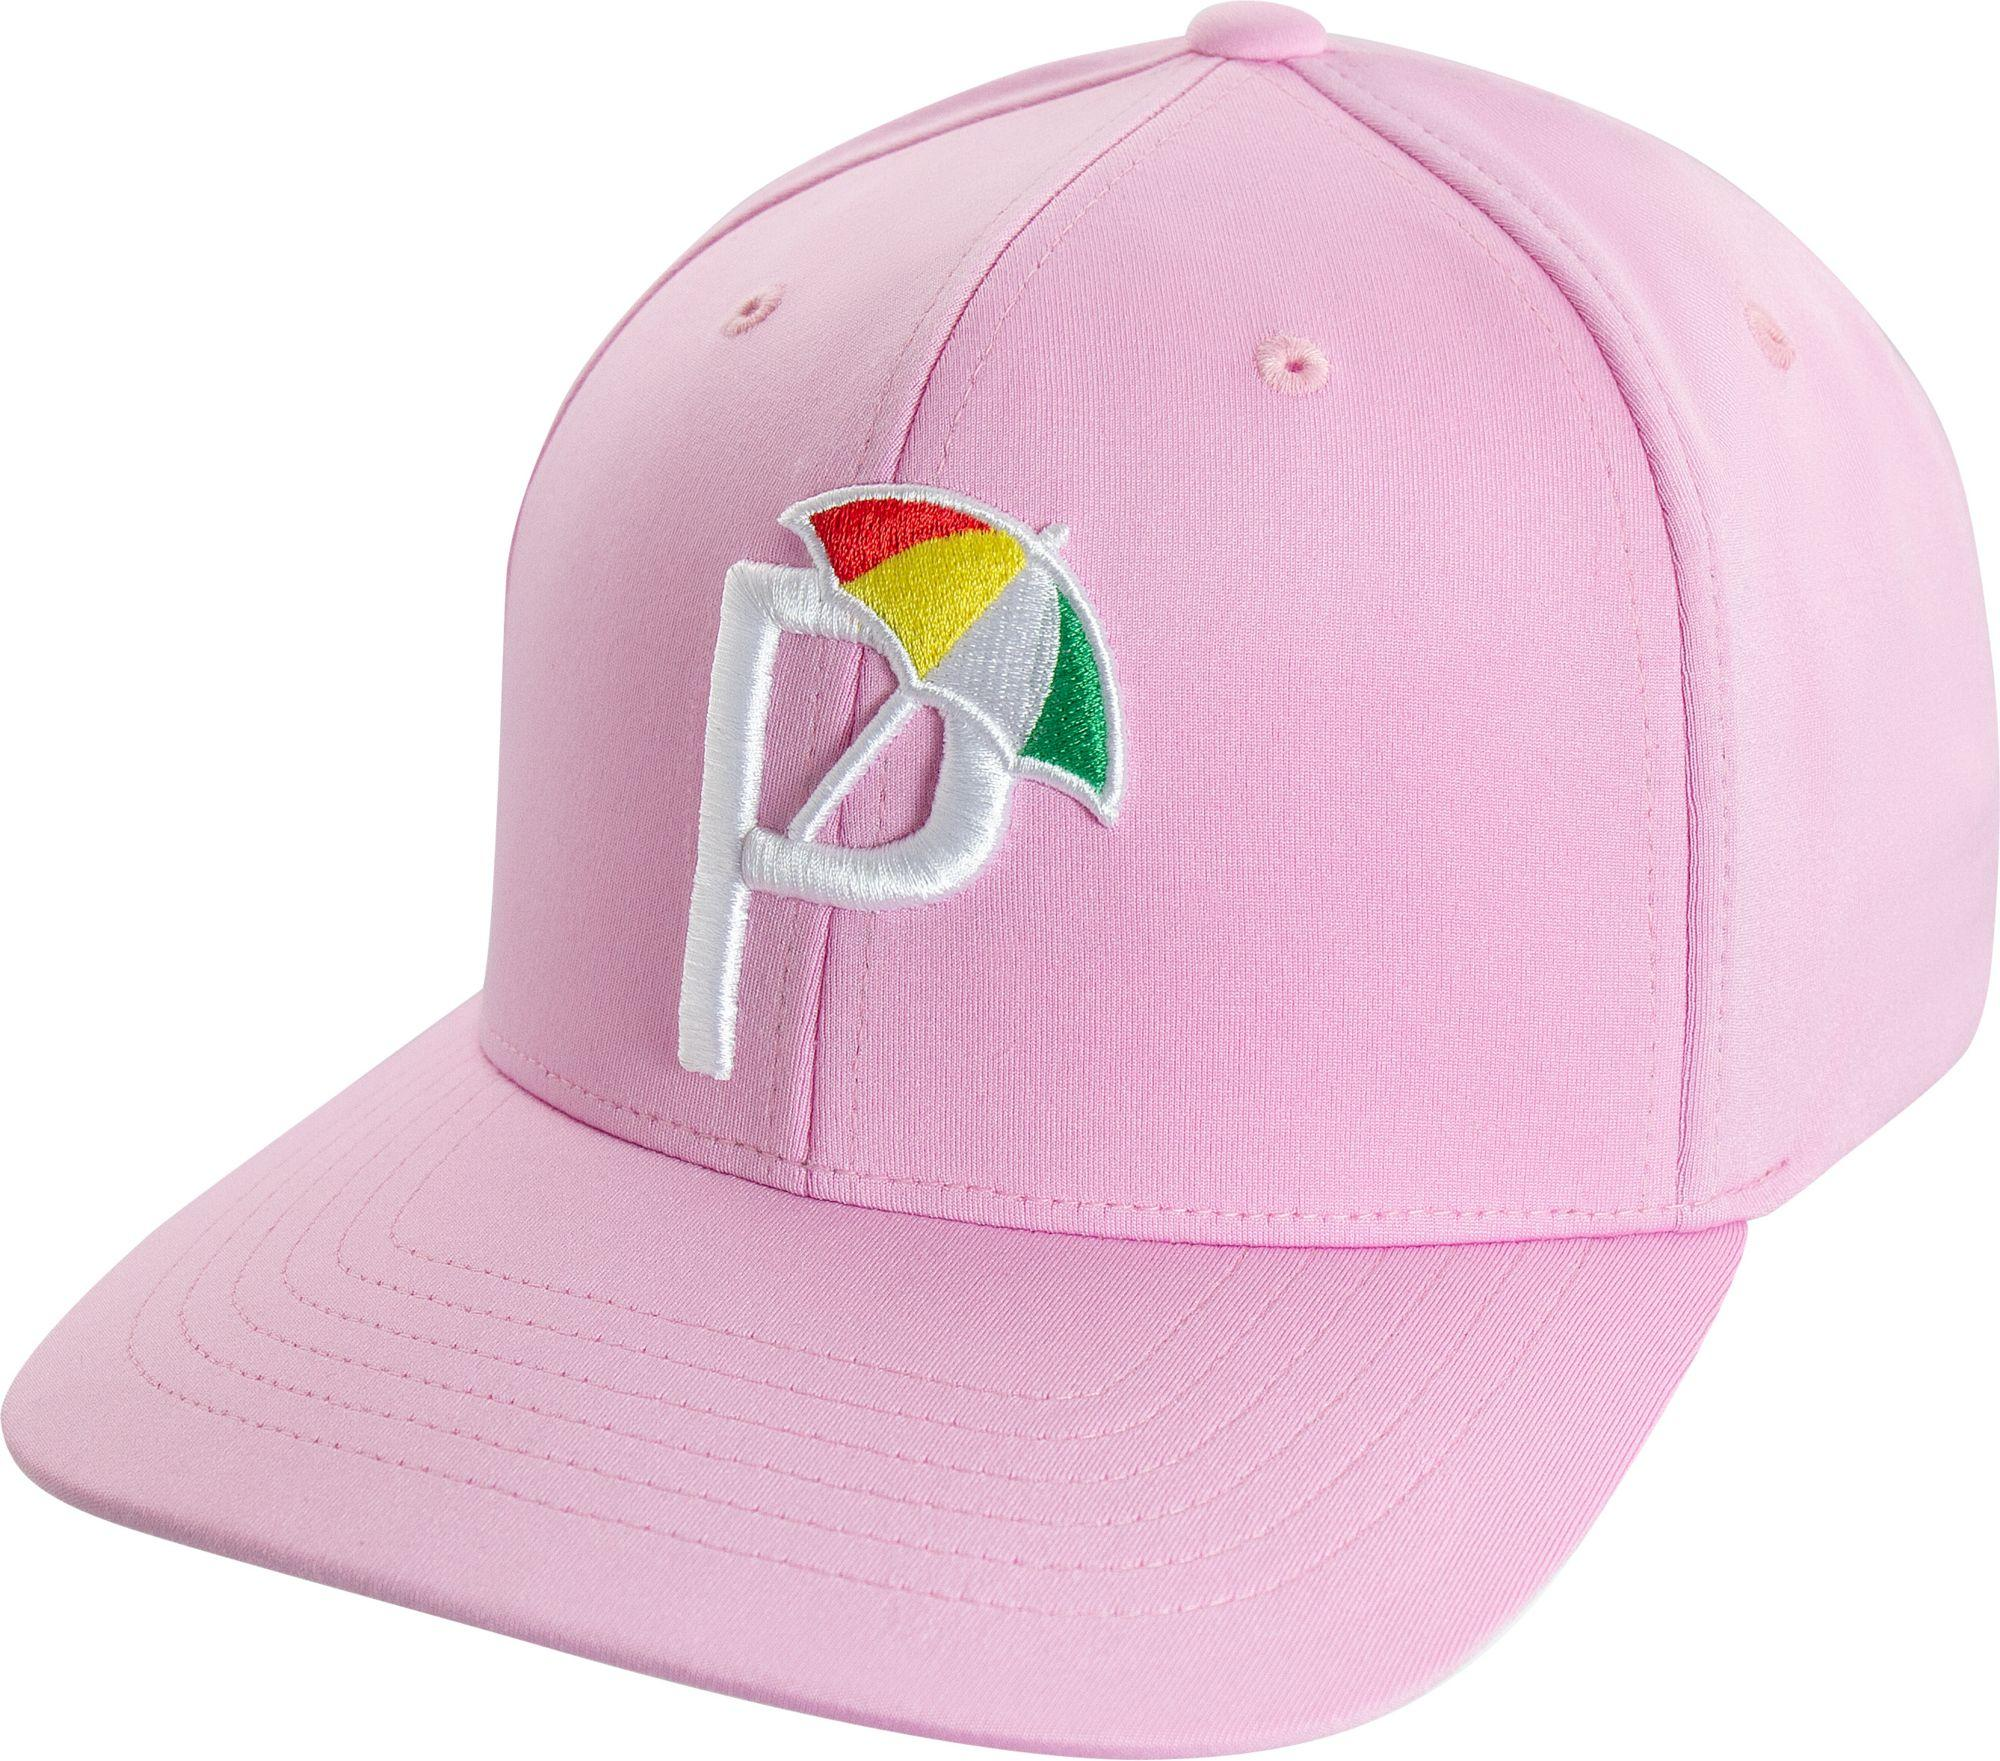 low priced 699ee 3b0de PUMA Ap Snapback P 110 Golf Hat in Pink for Men - Lyst